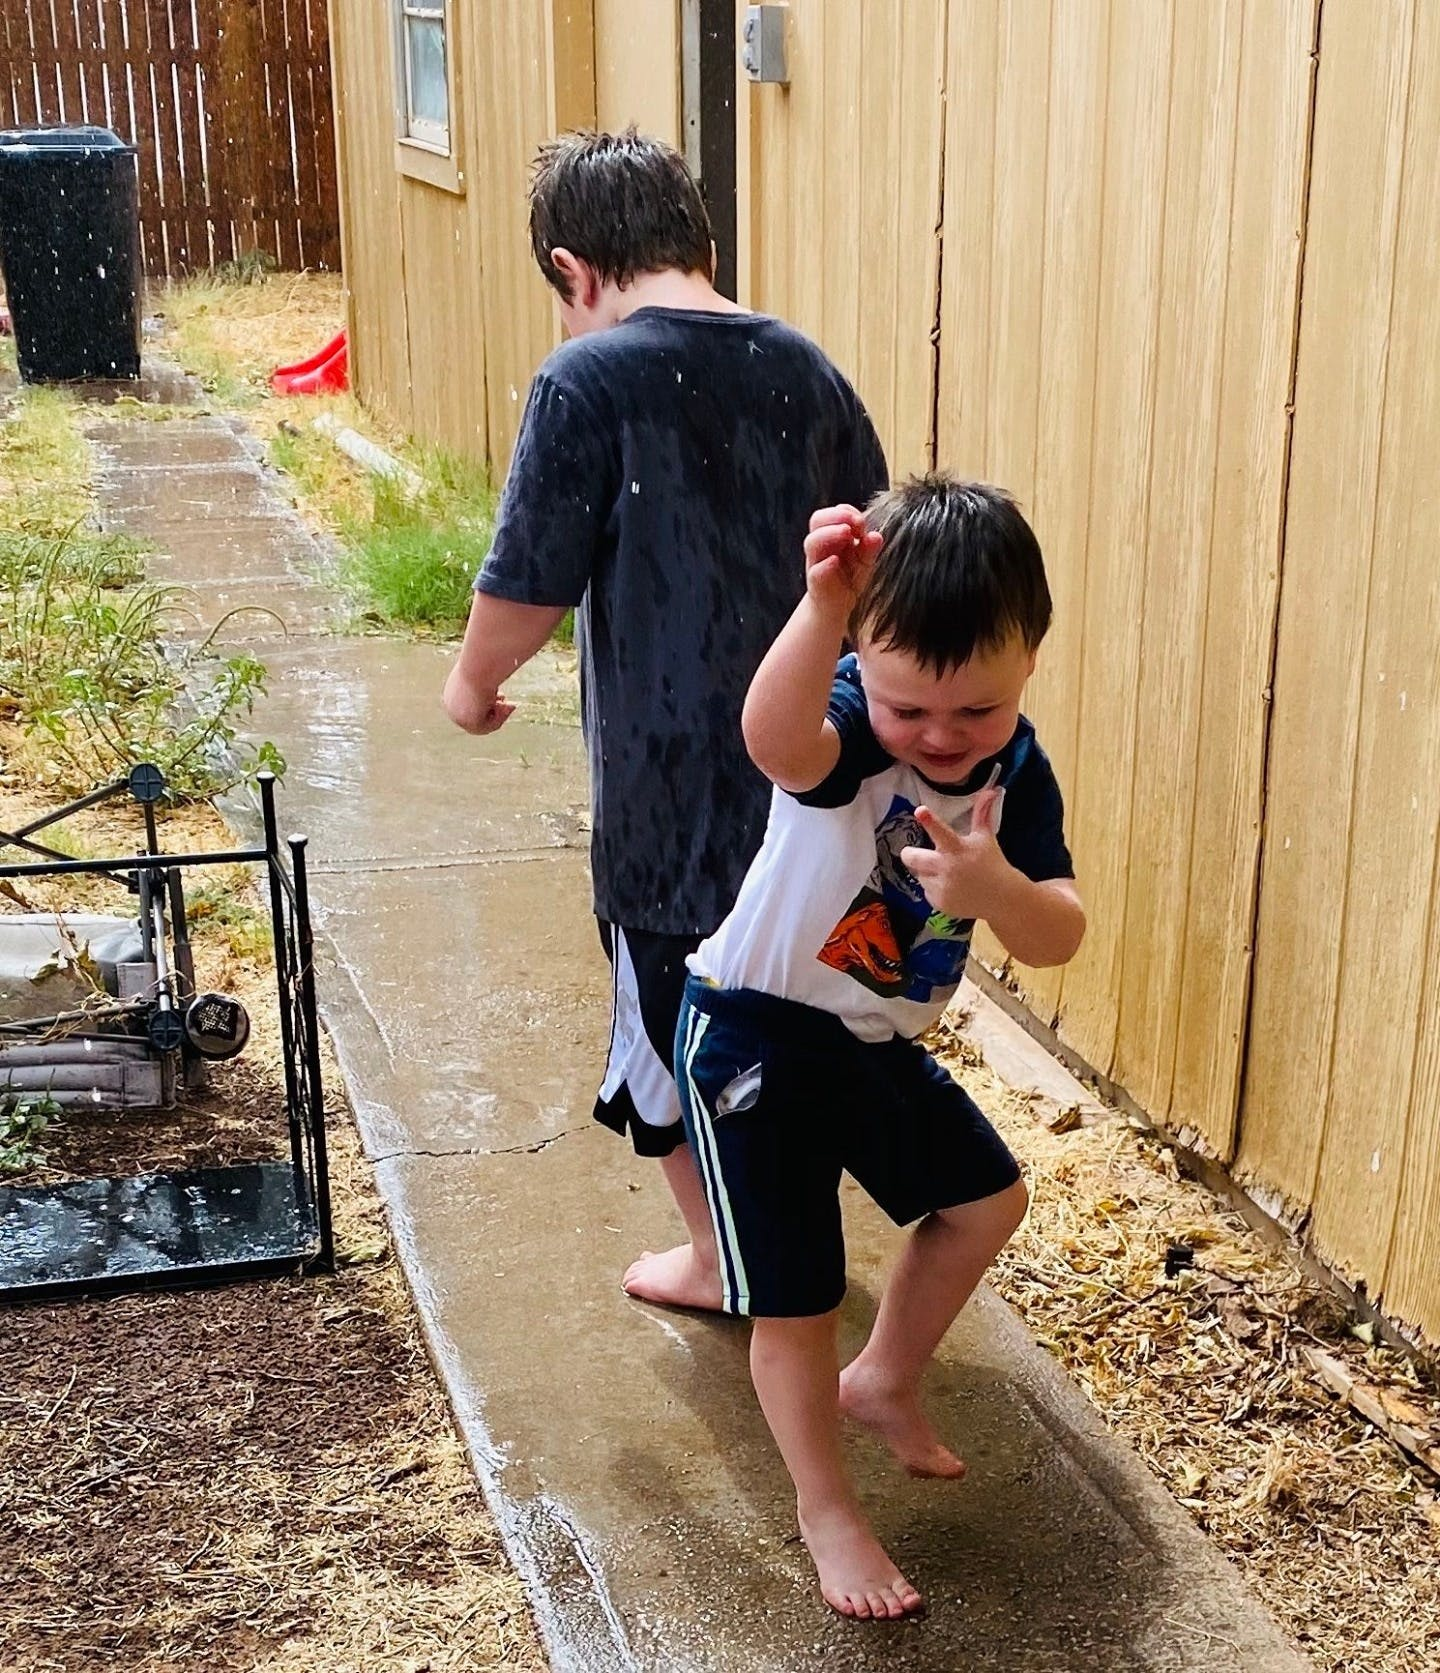 """Raising boys has made me a more generous woman than I really am."" -Mary Kay Blakely ⁣ 🎵 Dancing in the rain!! 🎵⁣ ⁣ #boymom #motherhood #momblog #momlife #mommyblogger #momsofinstagram #momlife #momsofinstagram #letthembelittle #motherhoodunplugged #uniteinmotherhood #mompreneur #childhoodunplugged #moms #modernmotherhood #momboss #wahm #sahm #making_memories #our_everyday_moments #ourtinymoments #brothers #bestfriends #brotherlylove"